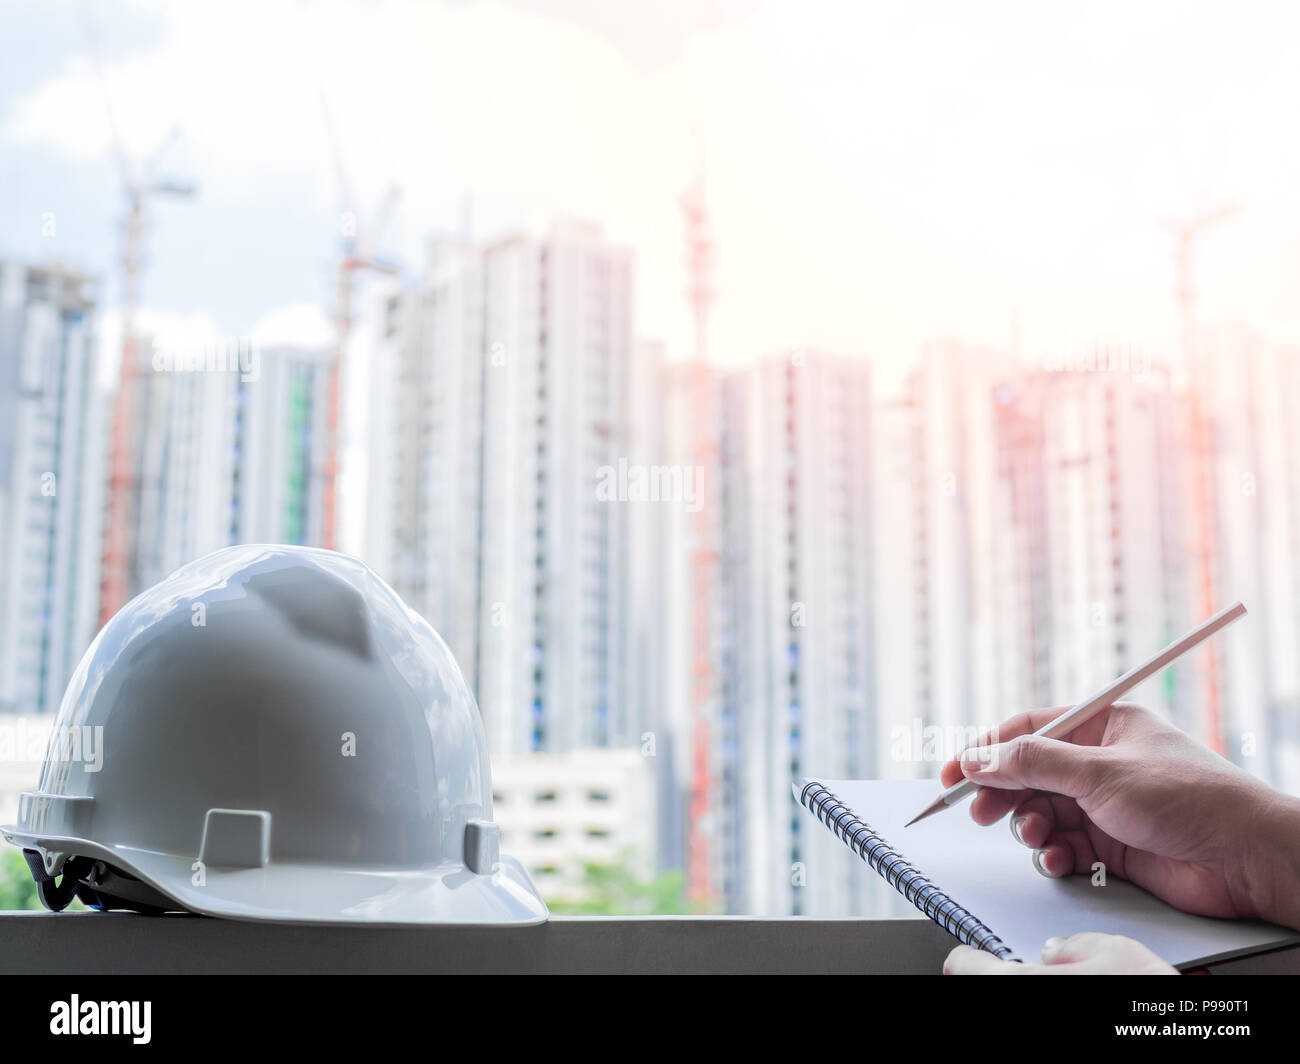 White Hard Safety Helmet For Civil Engineer Protect And Safety Hat For Engineering Worker And Hand Writing Notebook By Pencil On Construction Buildin Stock Photo Alamy